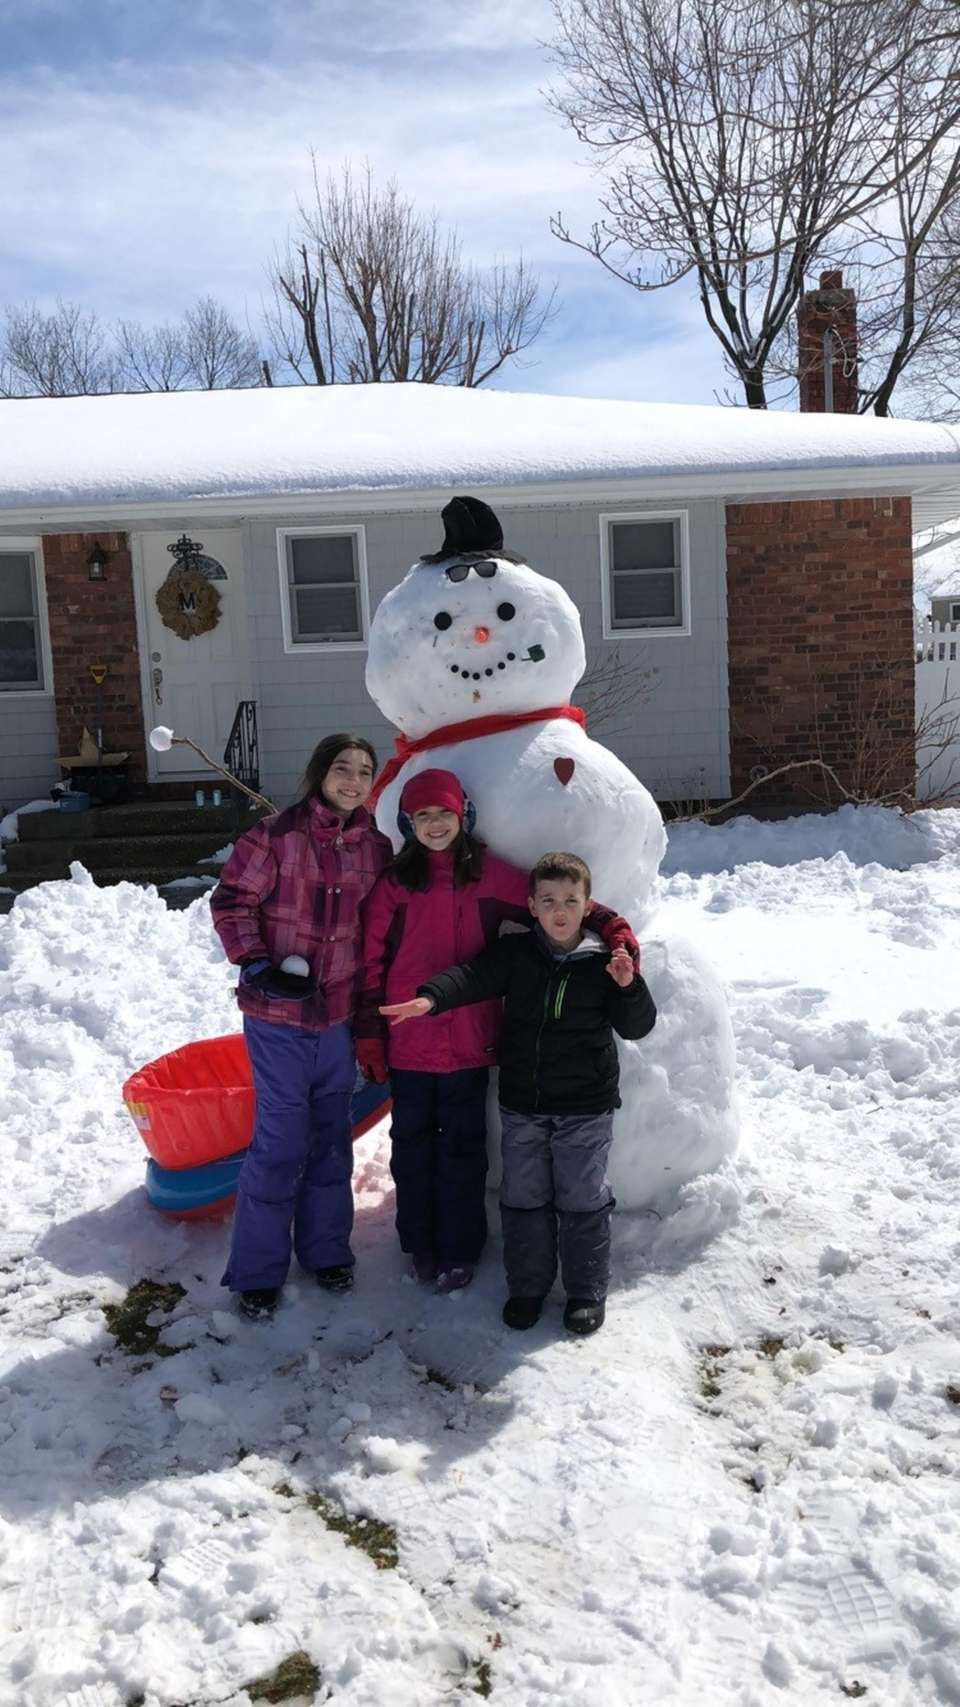 Cousin Snow Day March 22, 2018 Madison, Mia